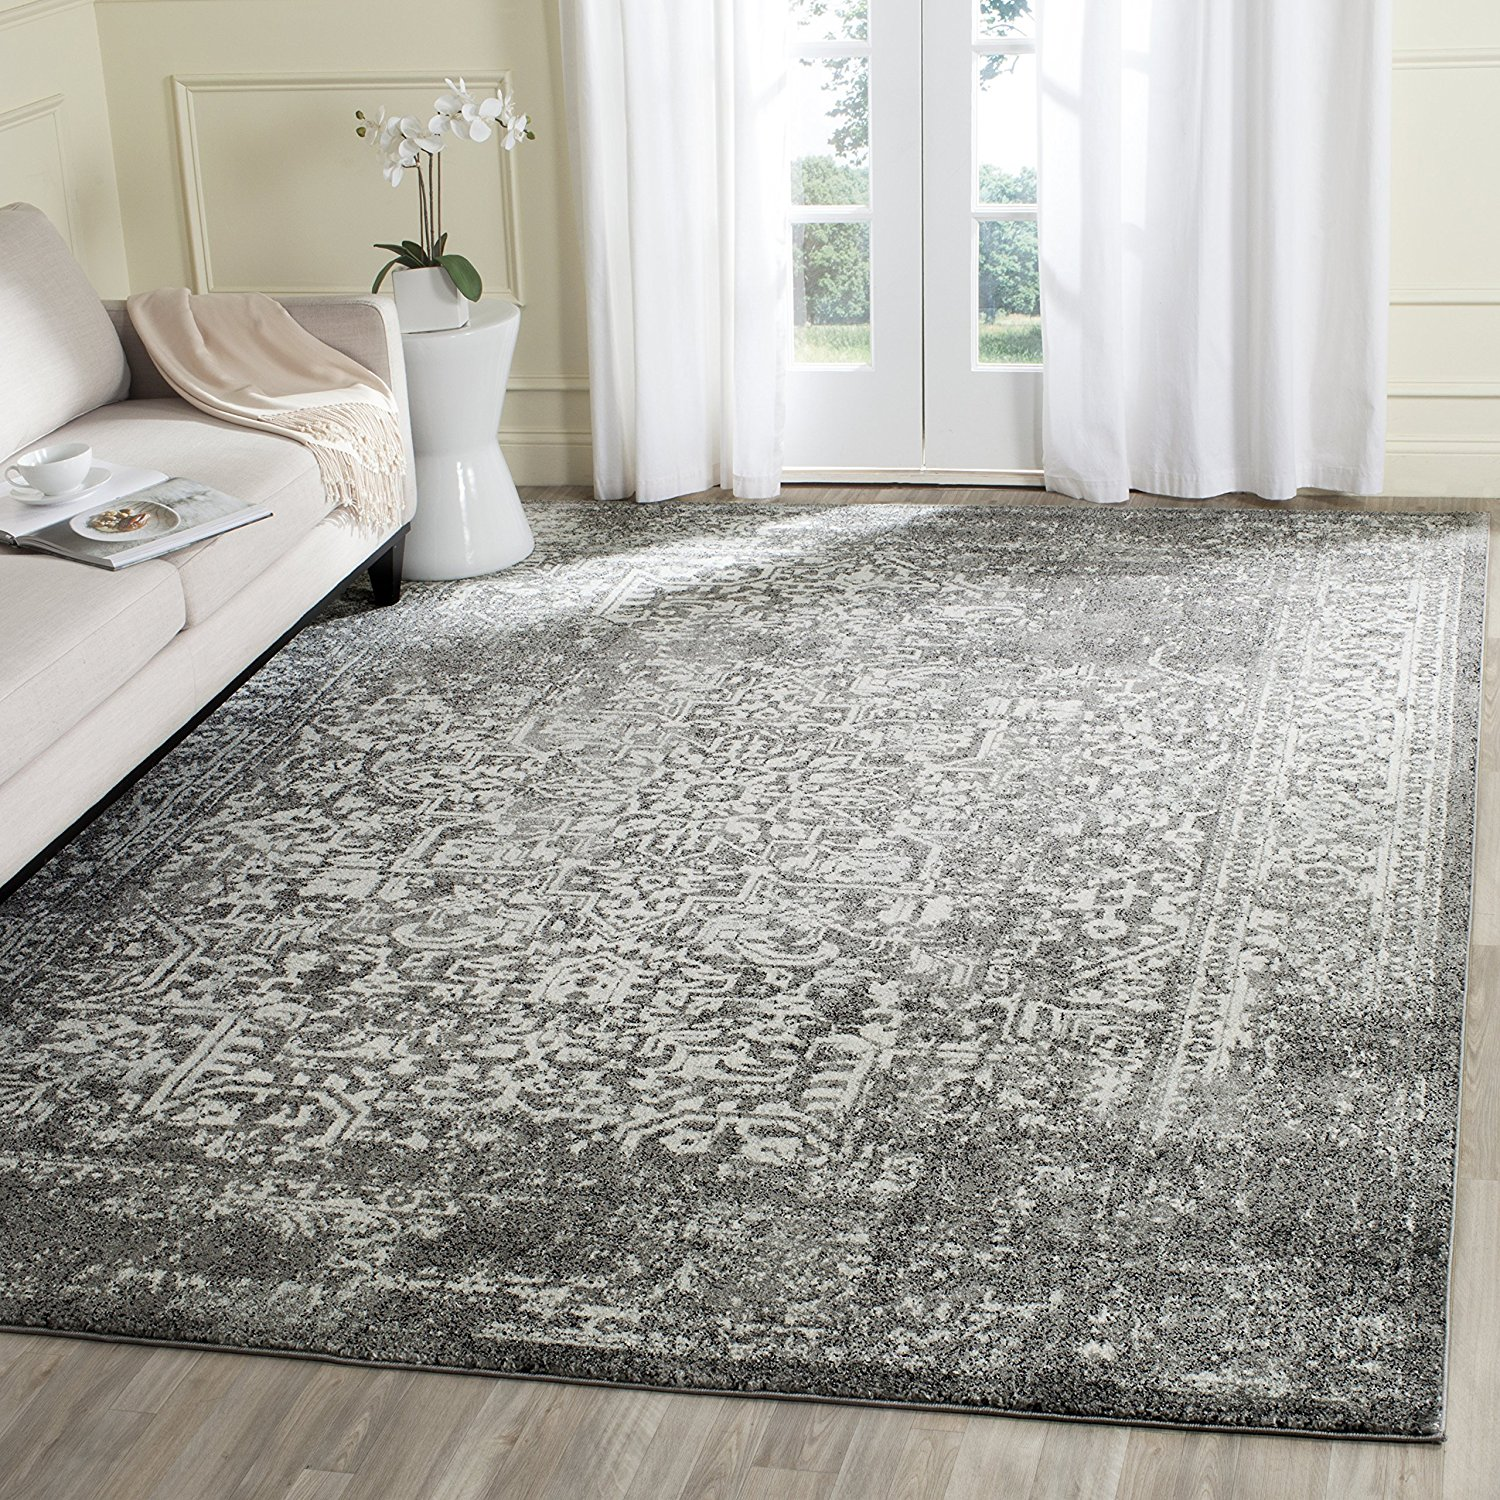 Farmhouse Style Area Rugs Under $100